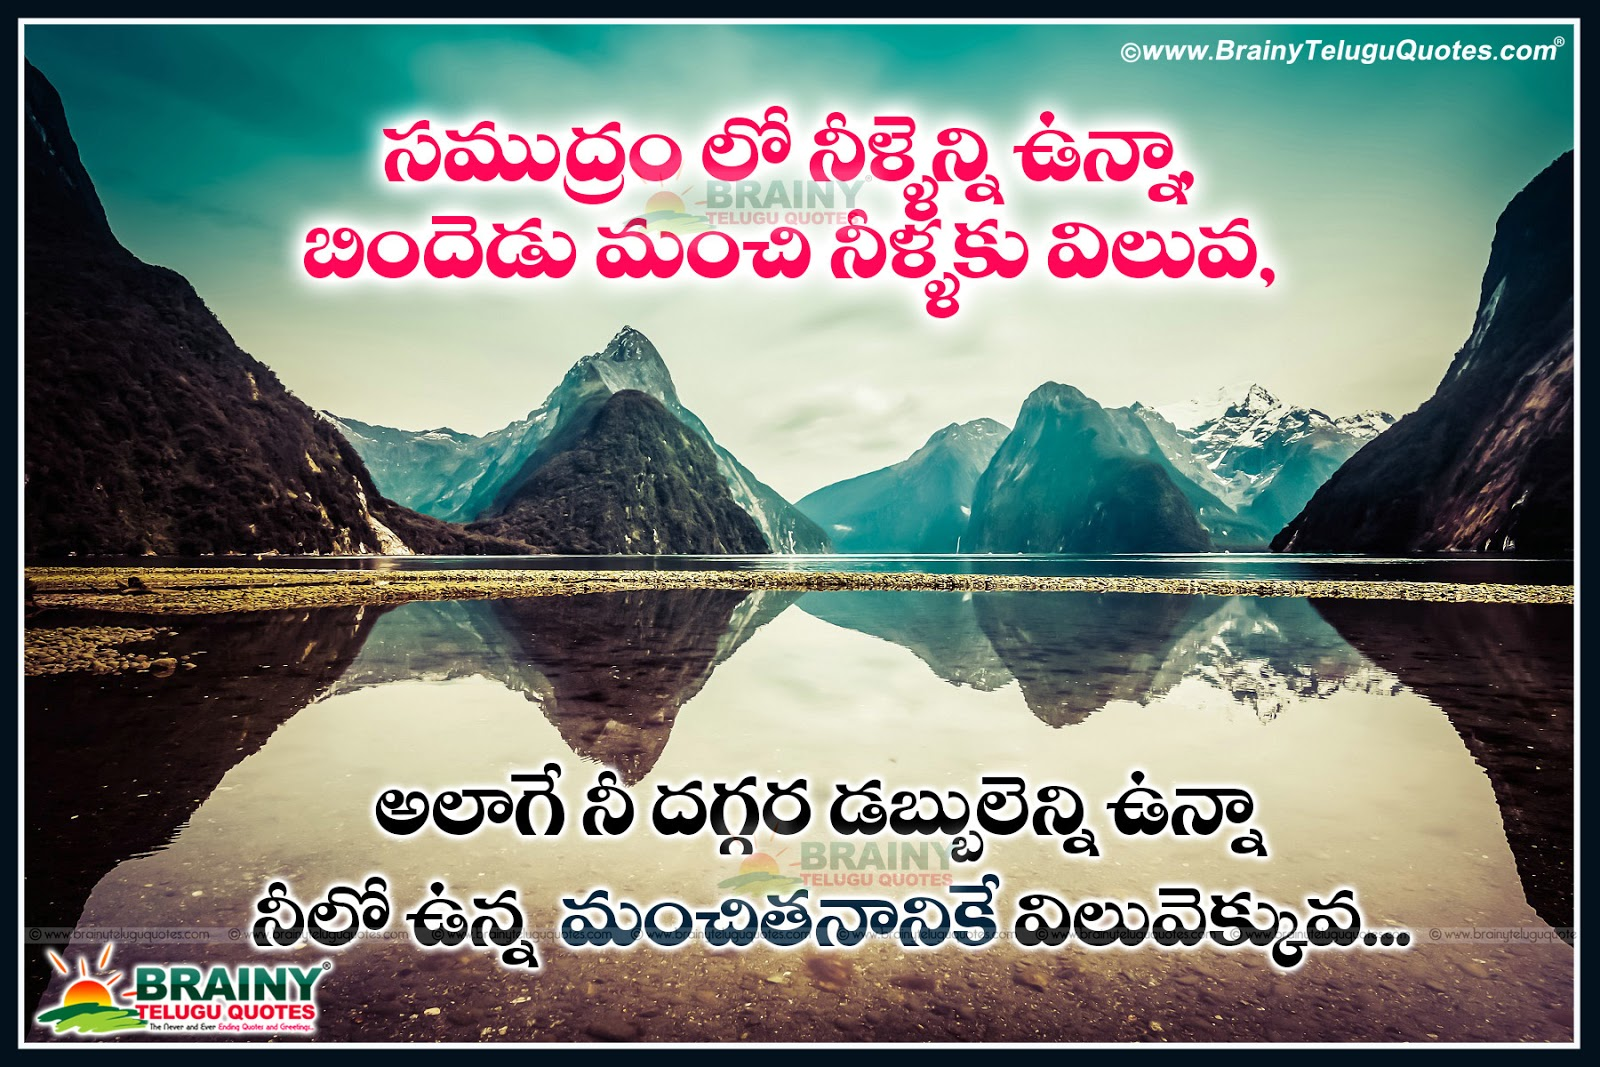 Top Quotes About Life And Happiness Telugu Money Vs Happiness Quotes And Nice Inspiring Good Morning